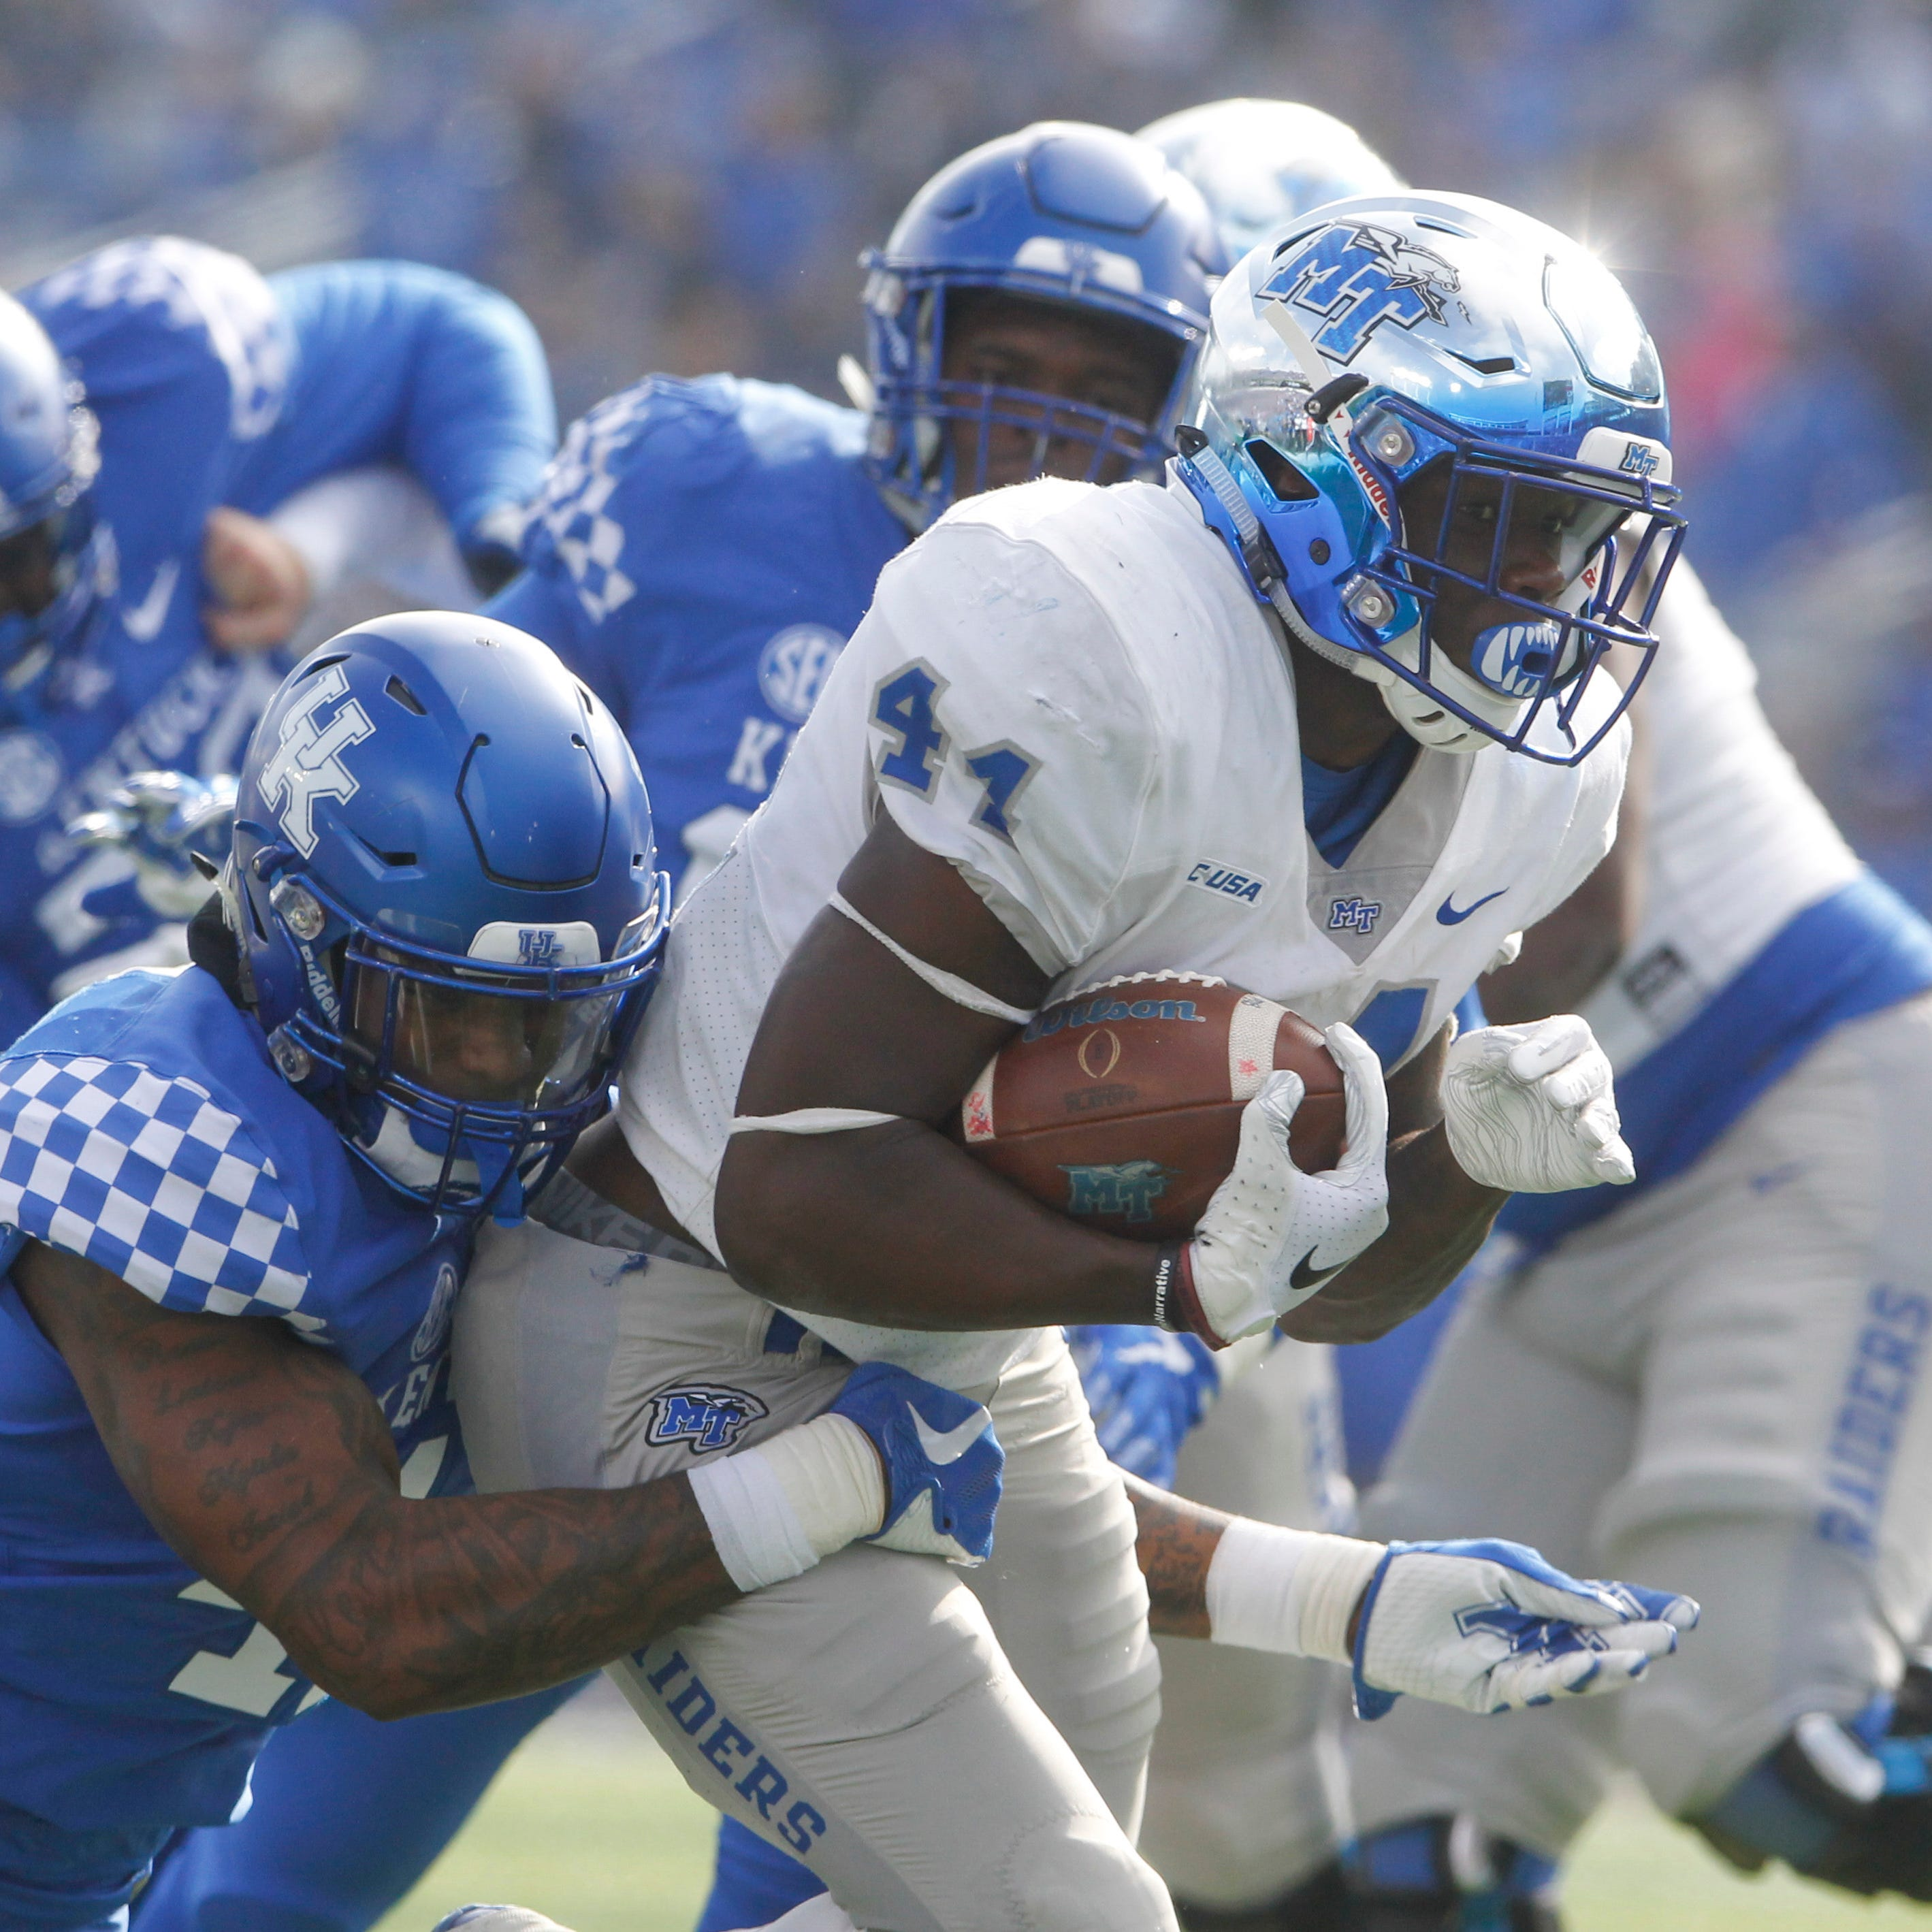 Kentucky football 34, MTSU 23: Five things we learned as Blue Raiders comeback falls short